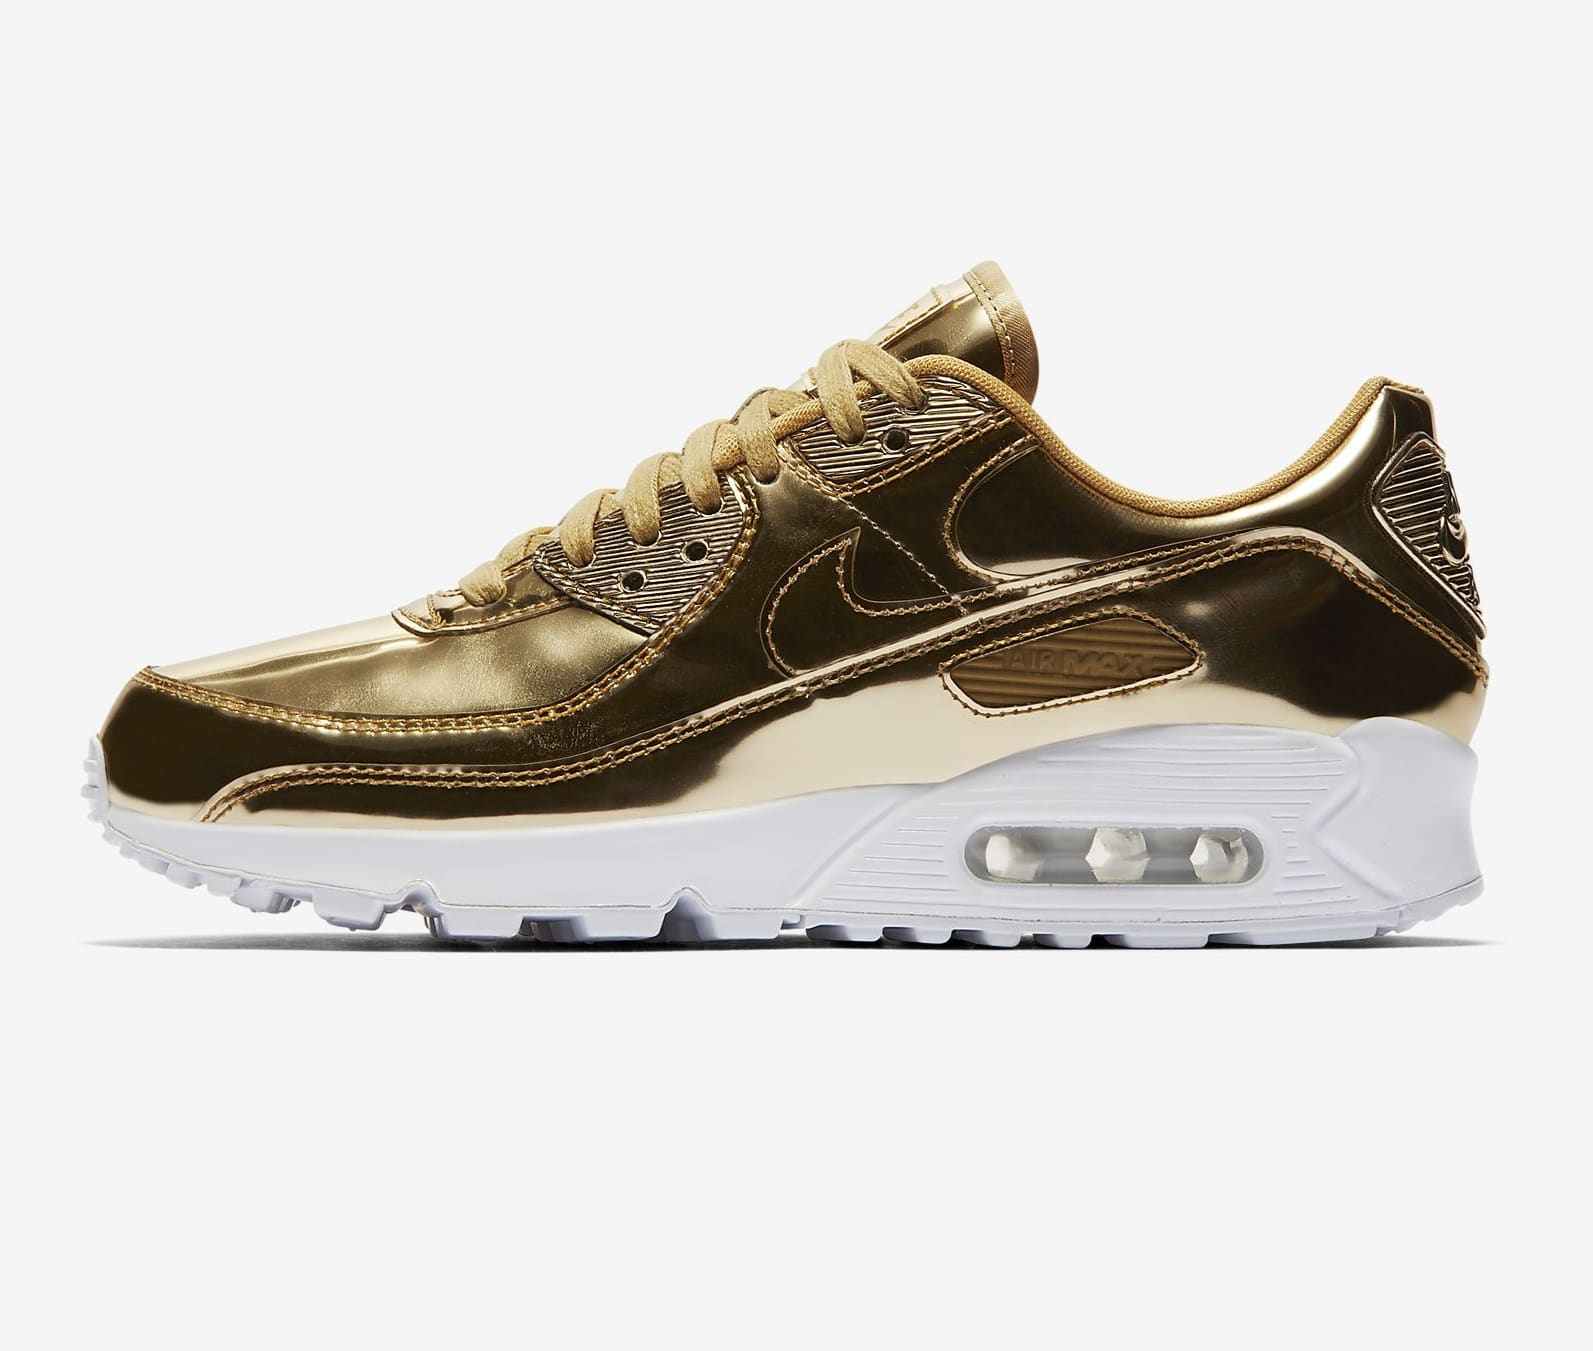 Soldes Nike - Nike Air Max 90 SP or